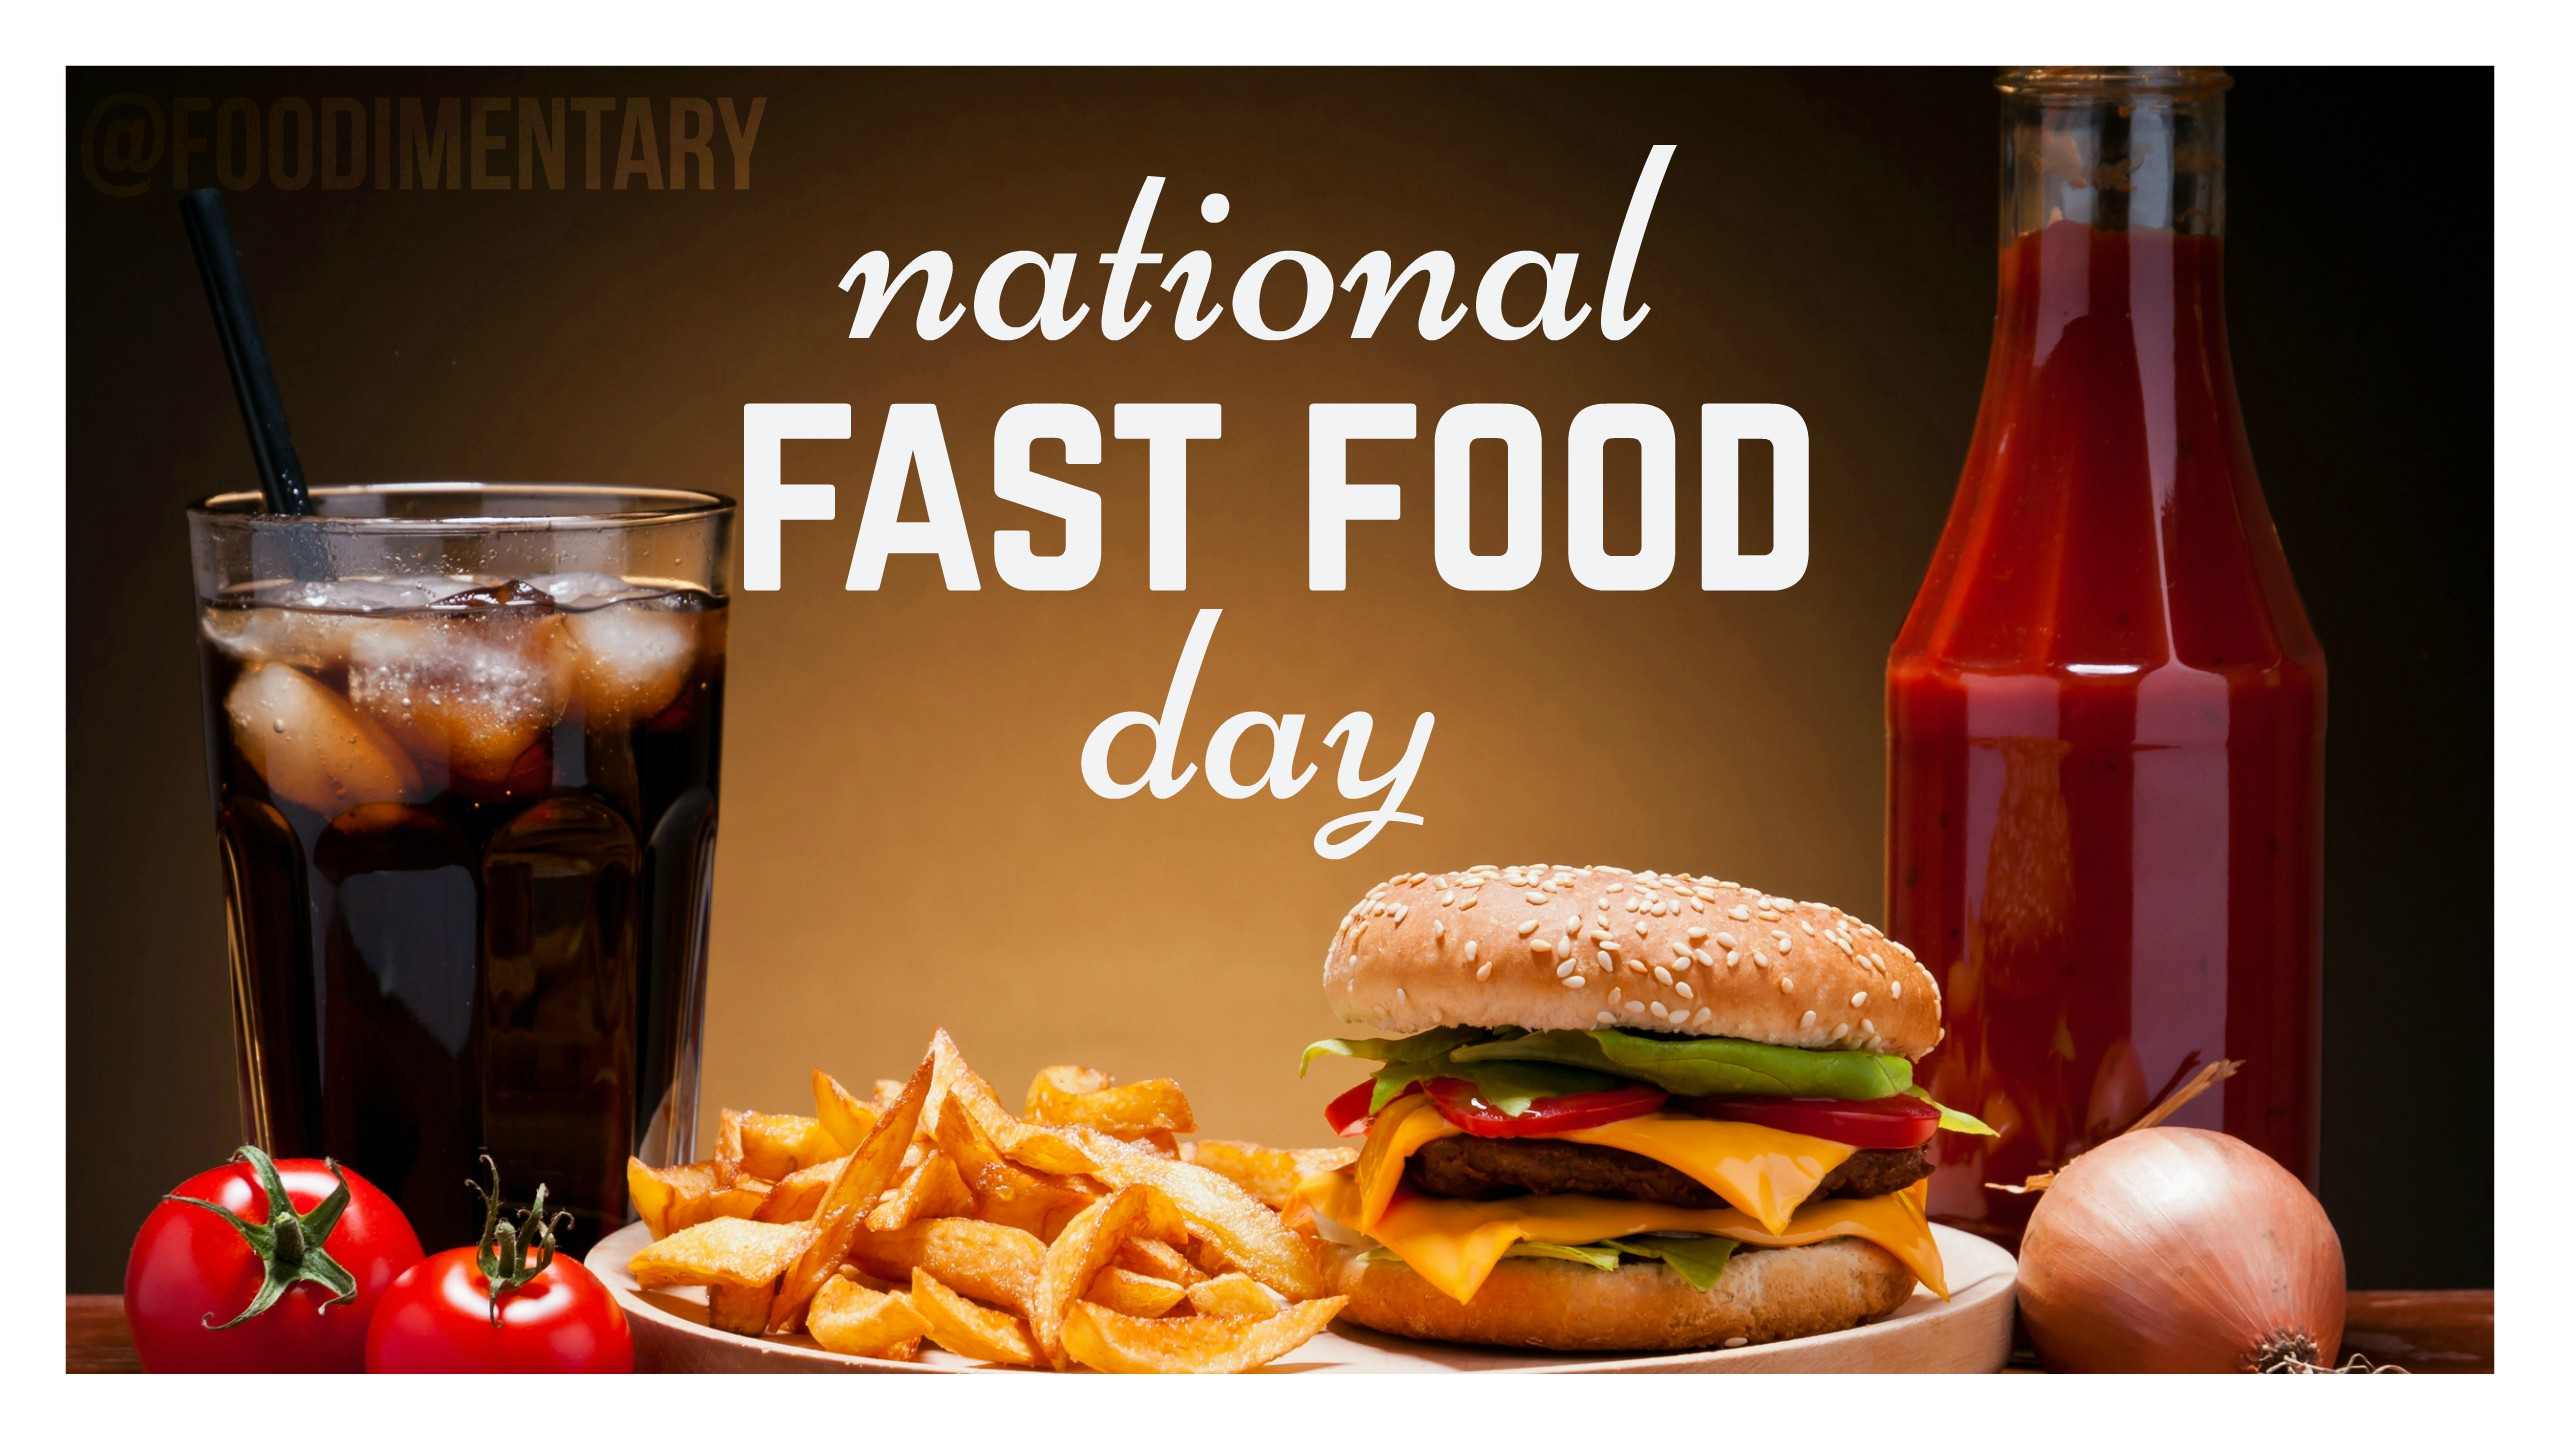 November 16th is National Fast Food Day Foodimentary   National 2560x1440